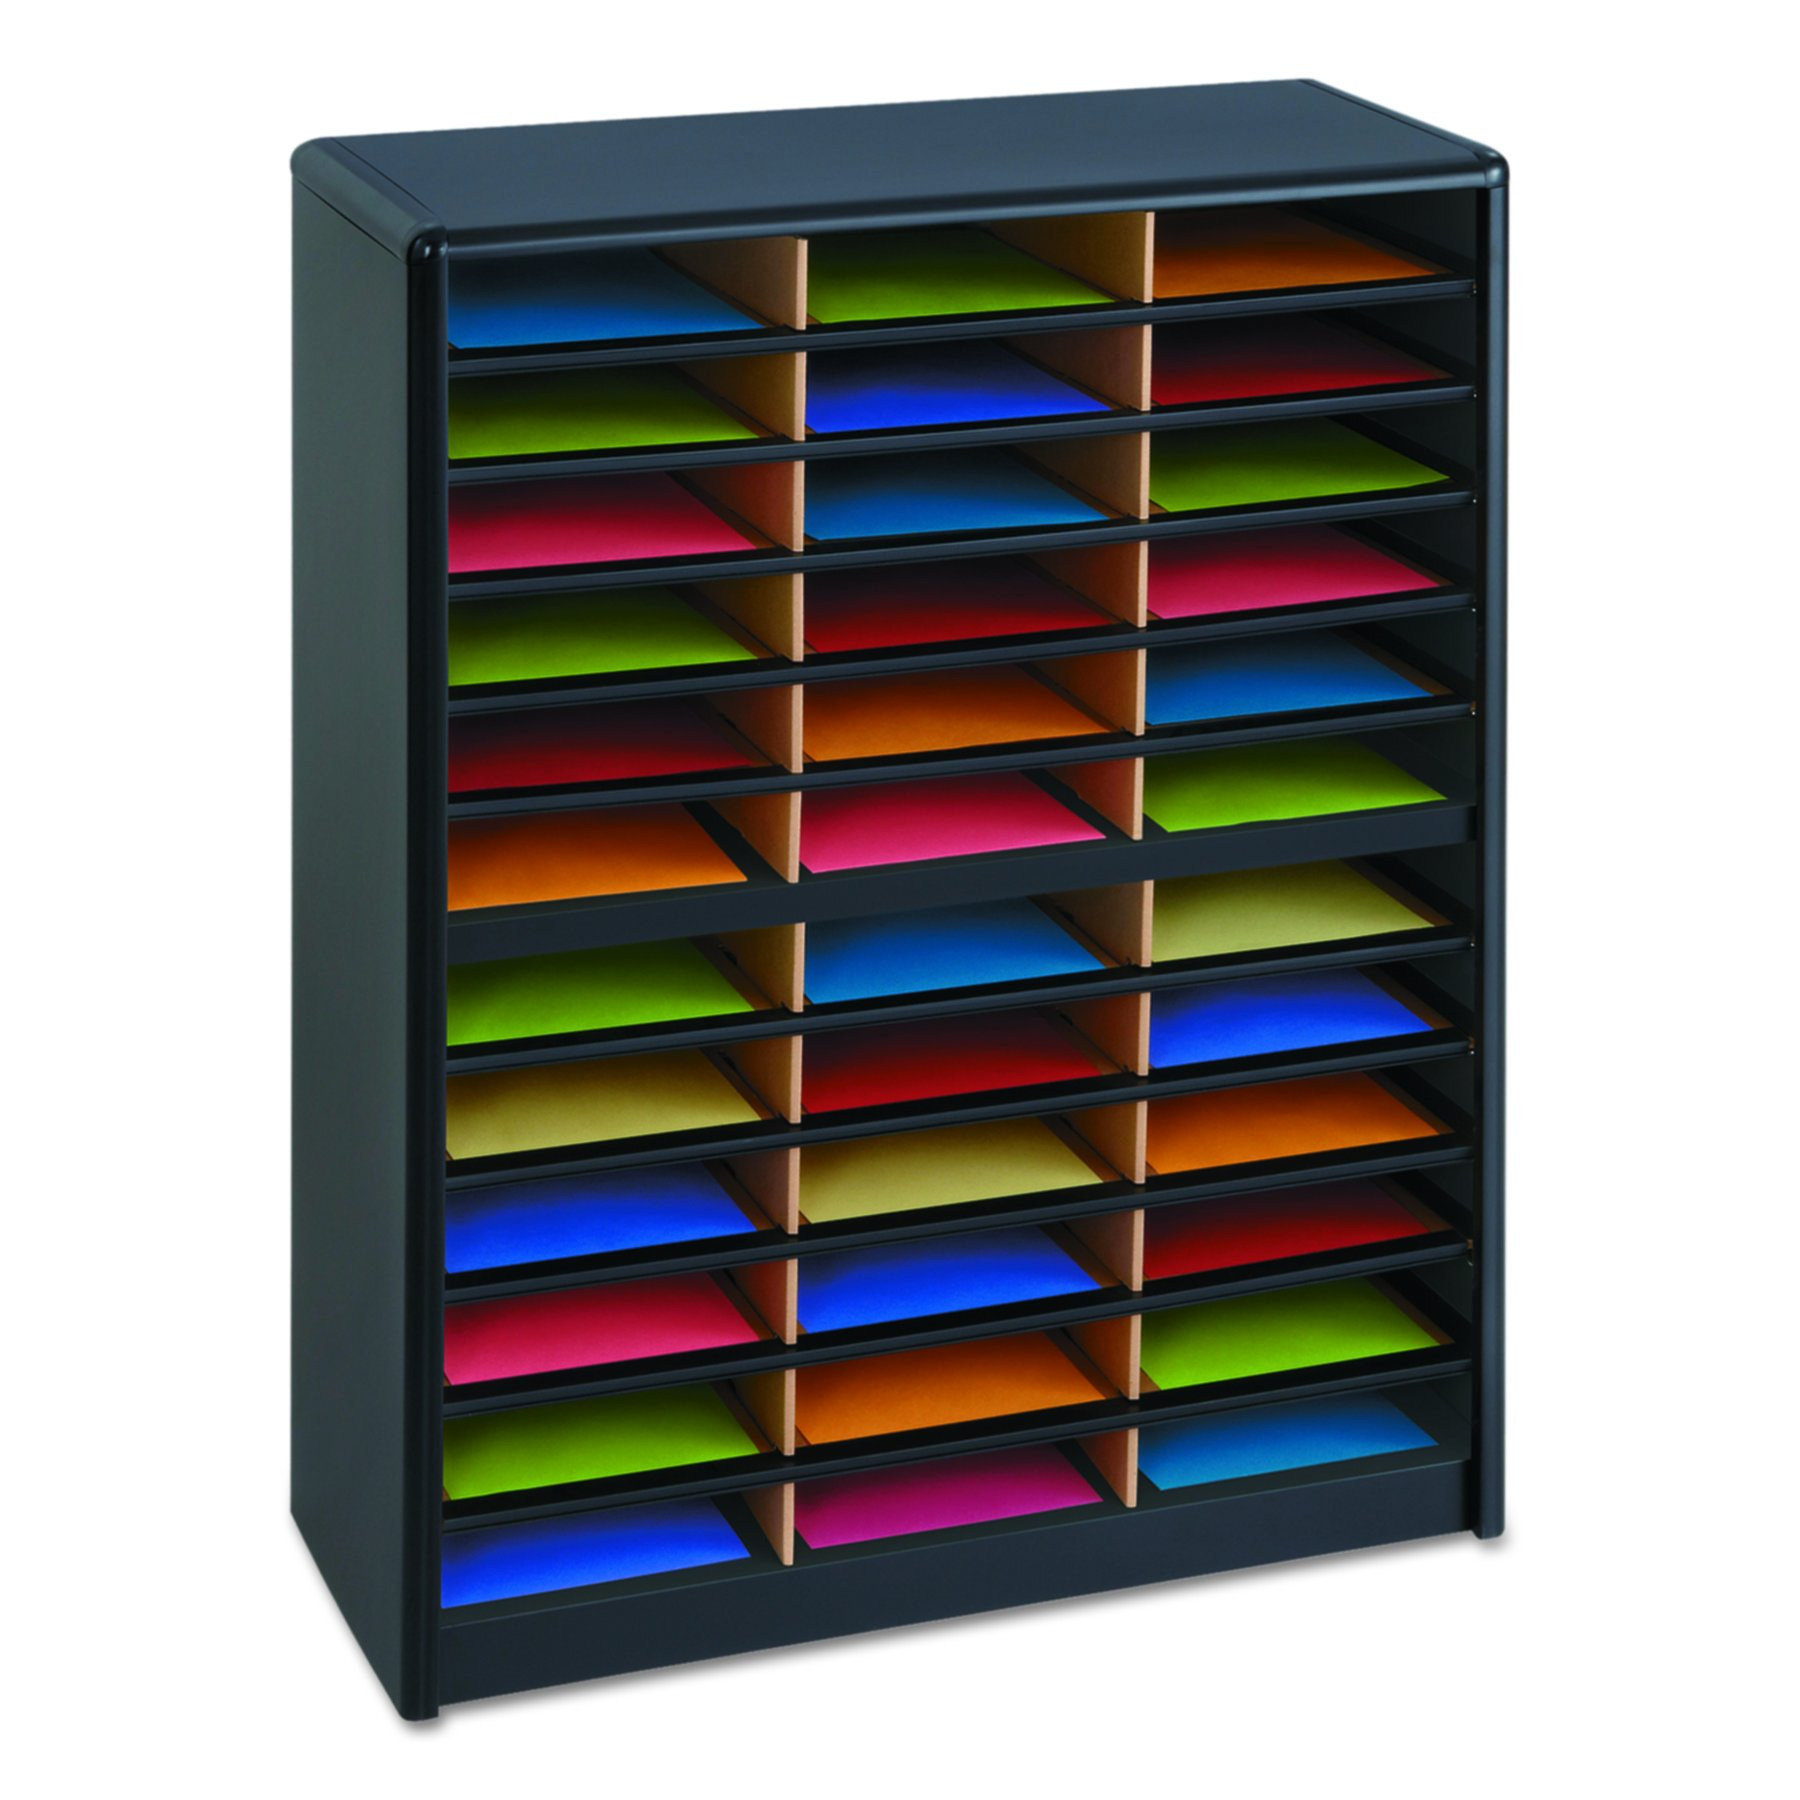 Safco Products 7121BL Value Sorter Literature Organizer, 36 Compartment, Black